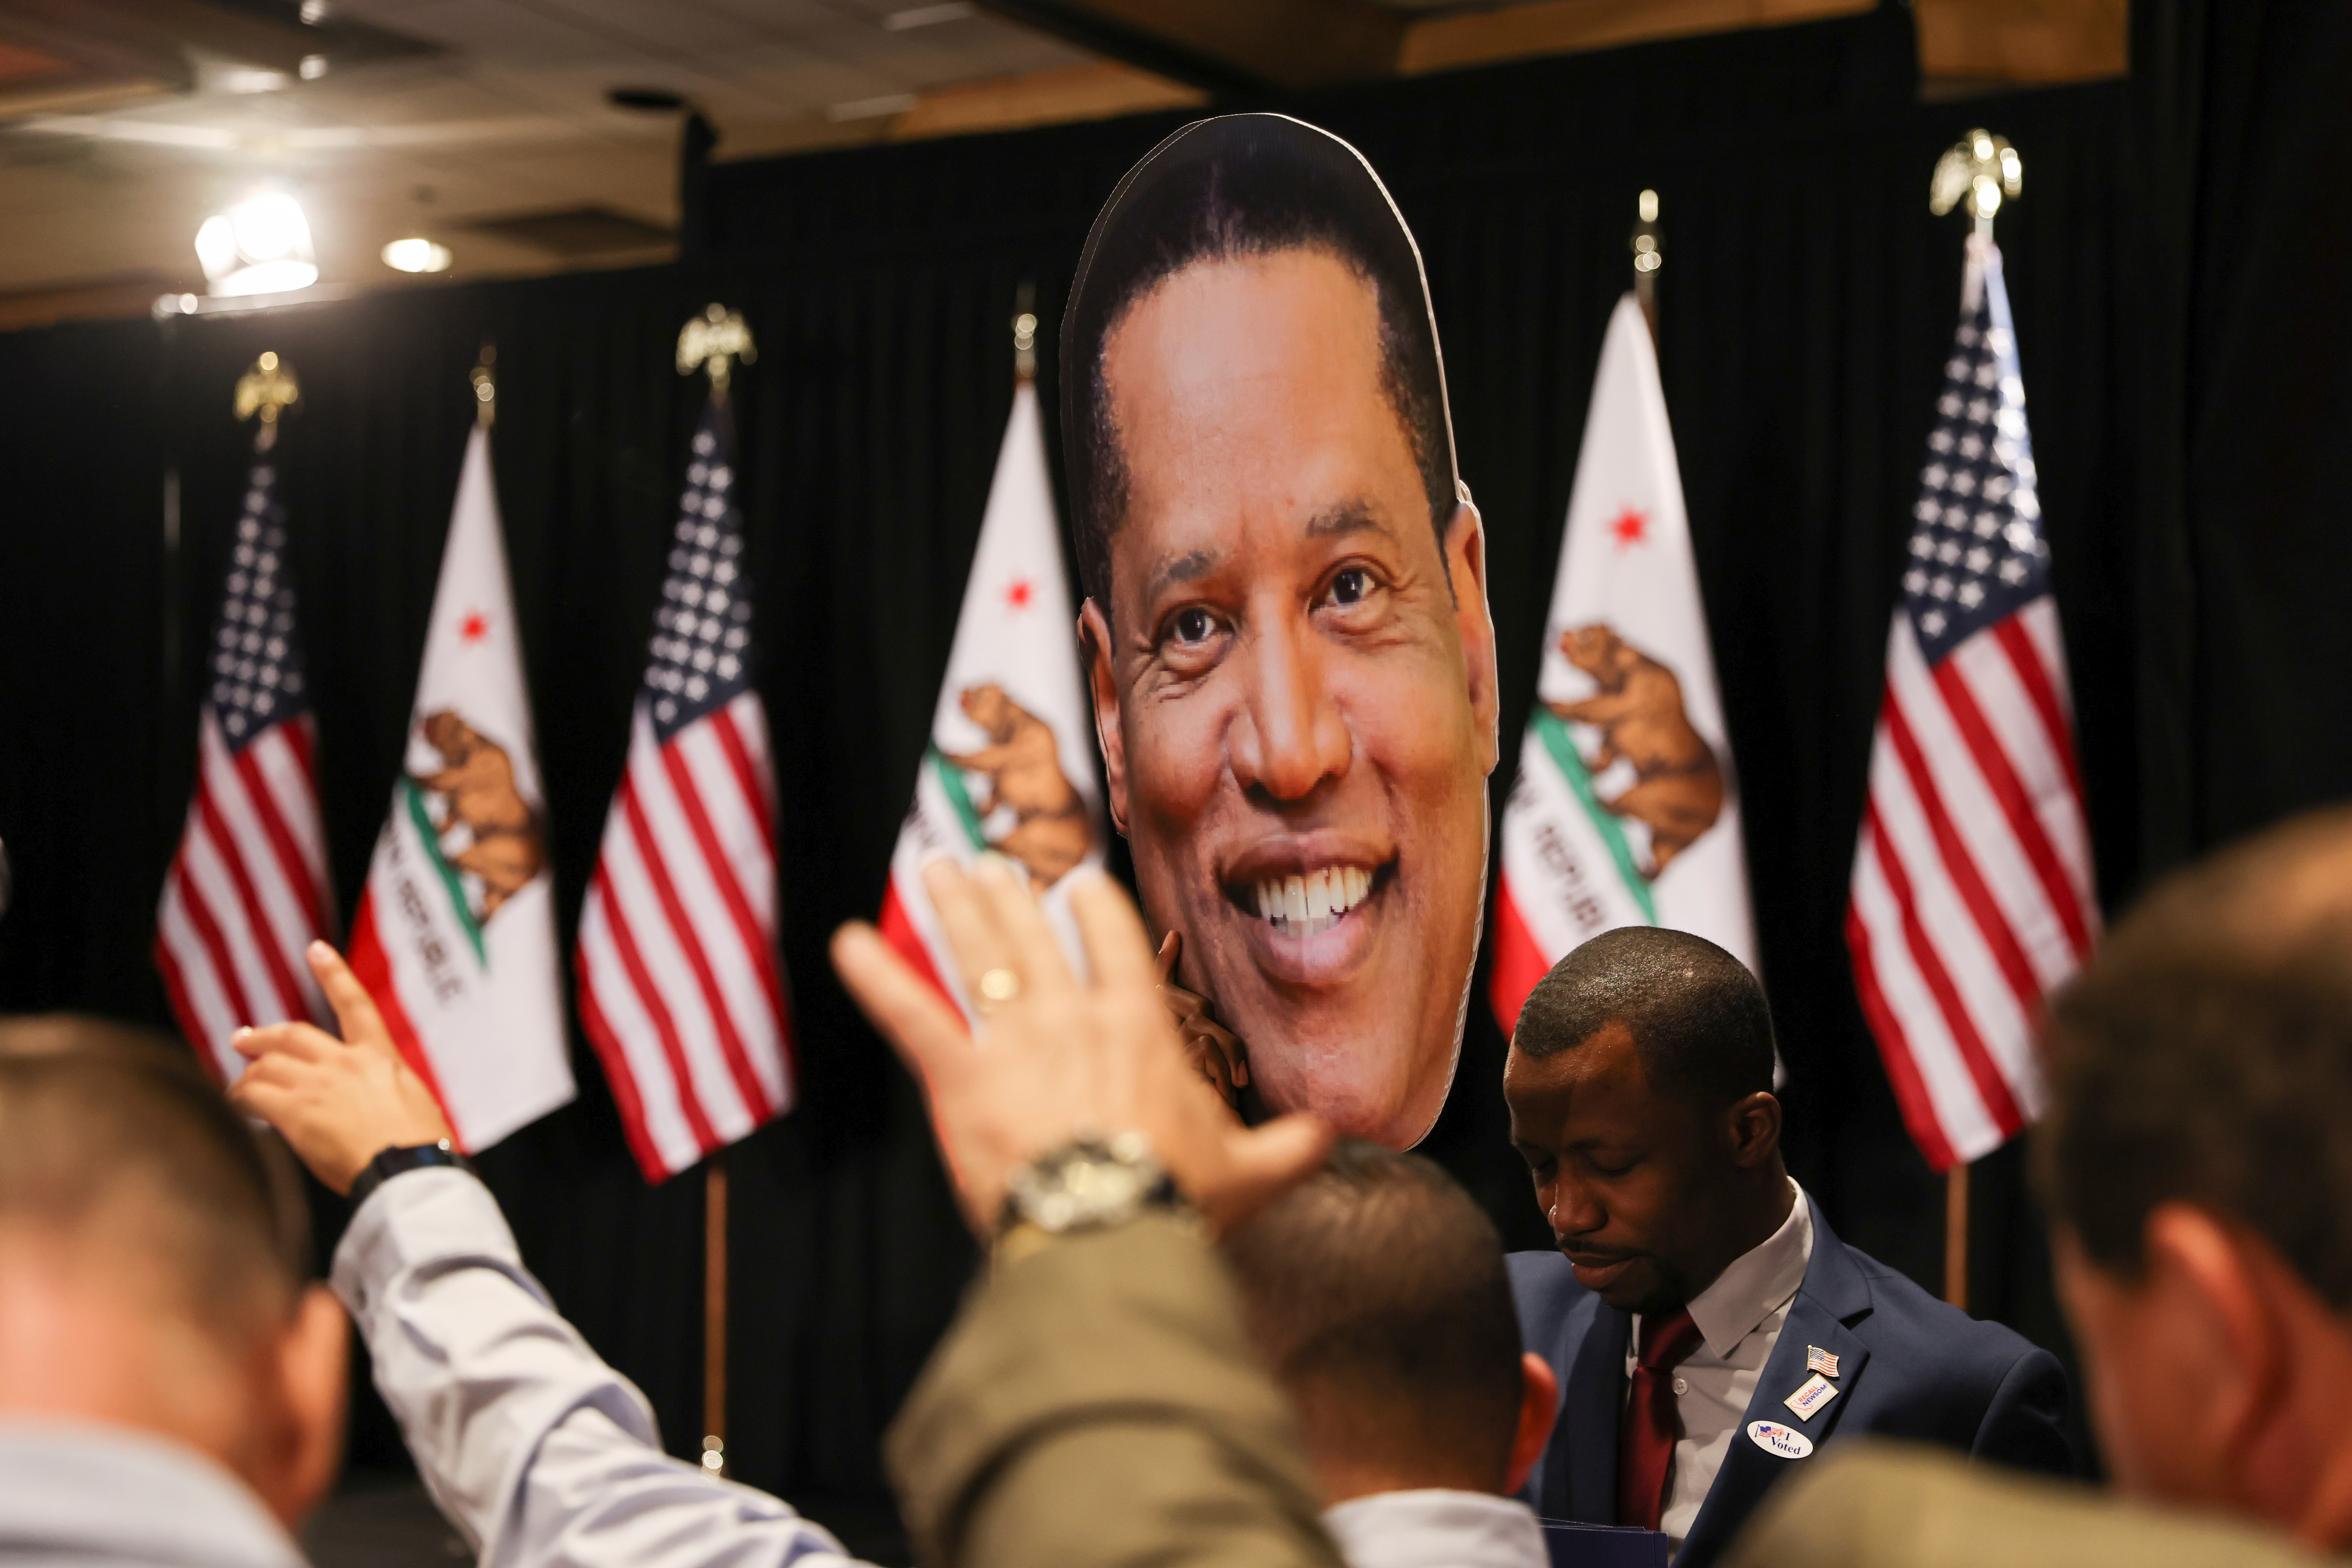 Supporters pray as they gather at Larry Elder's election night headquarters in Costa Mesa, California, U.S., September 14, 2021. REUTERS/Mike Blake